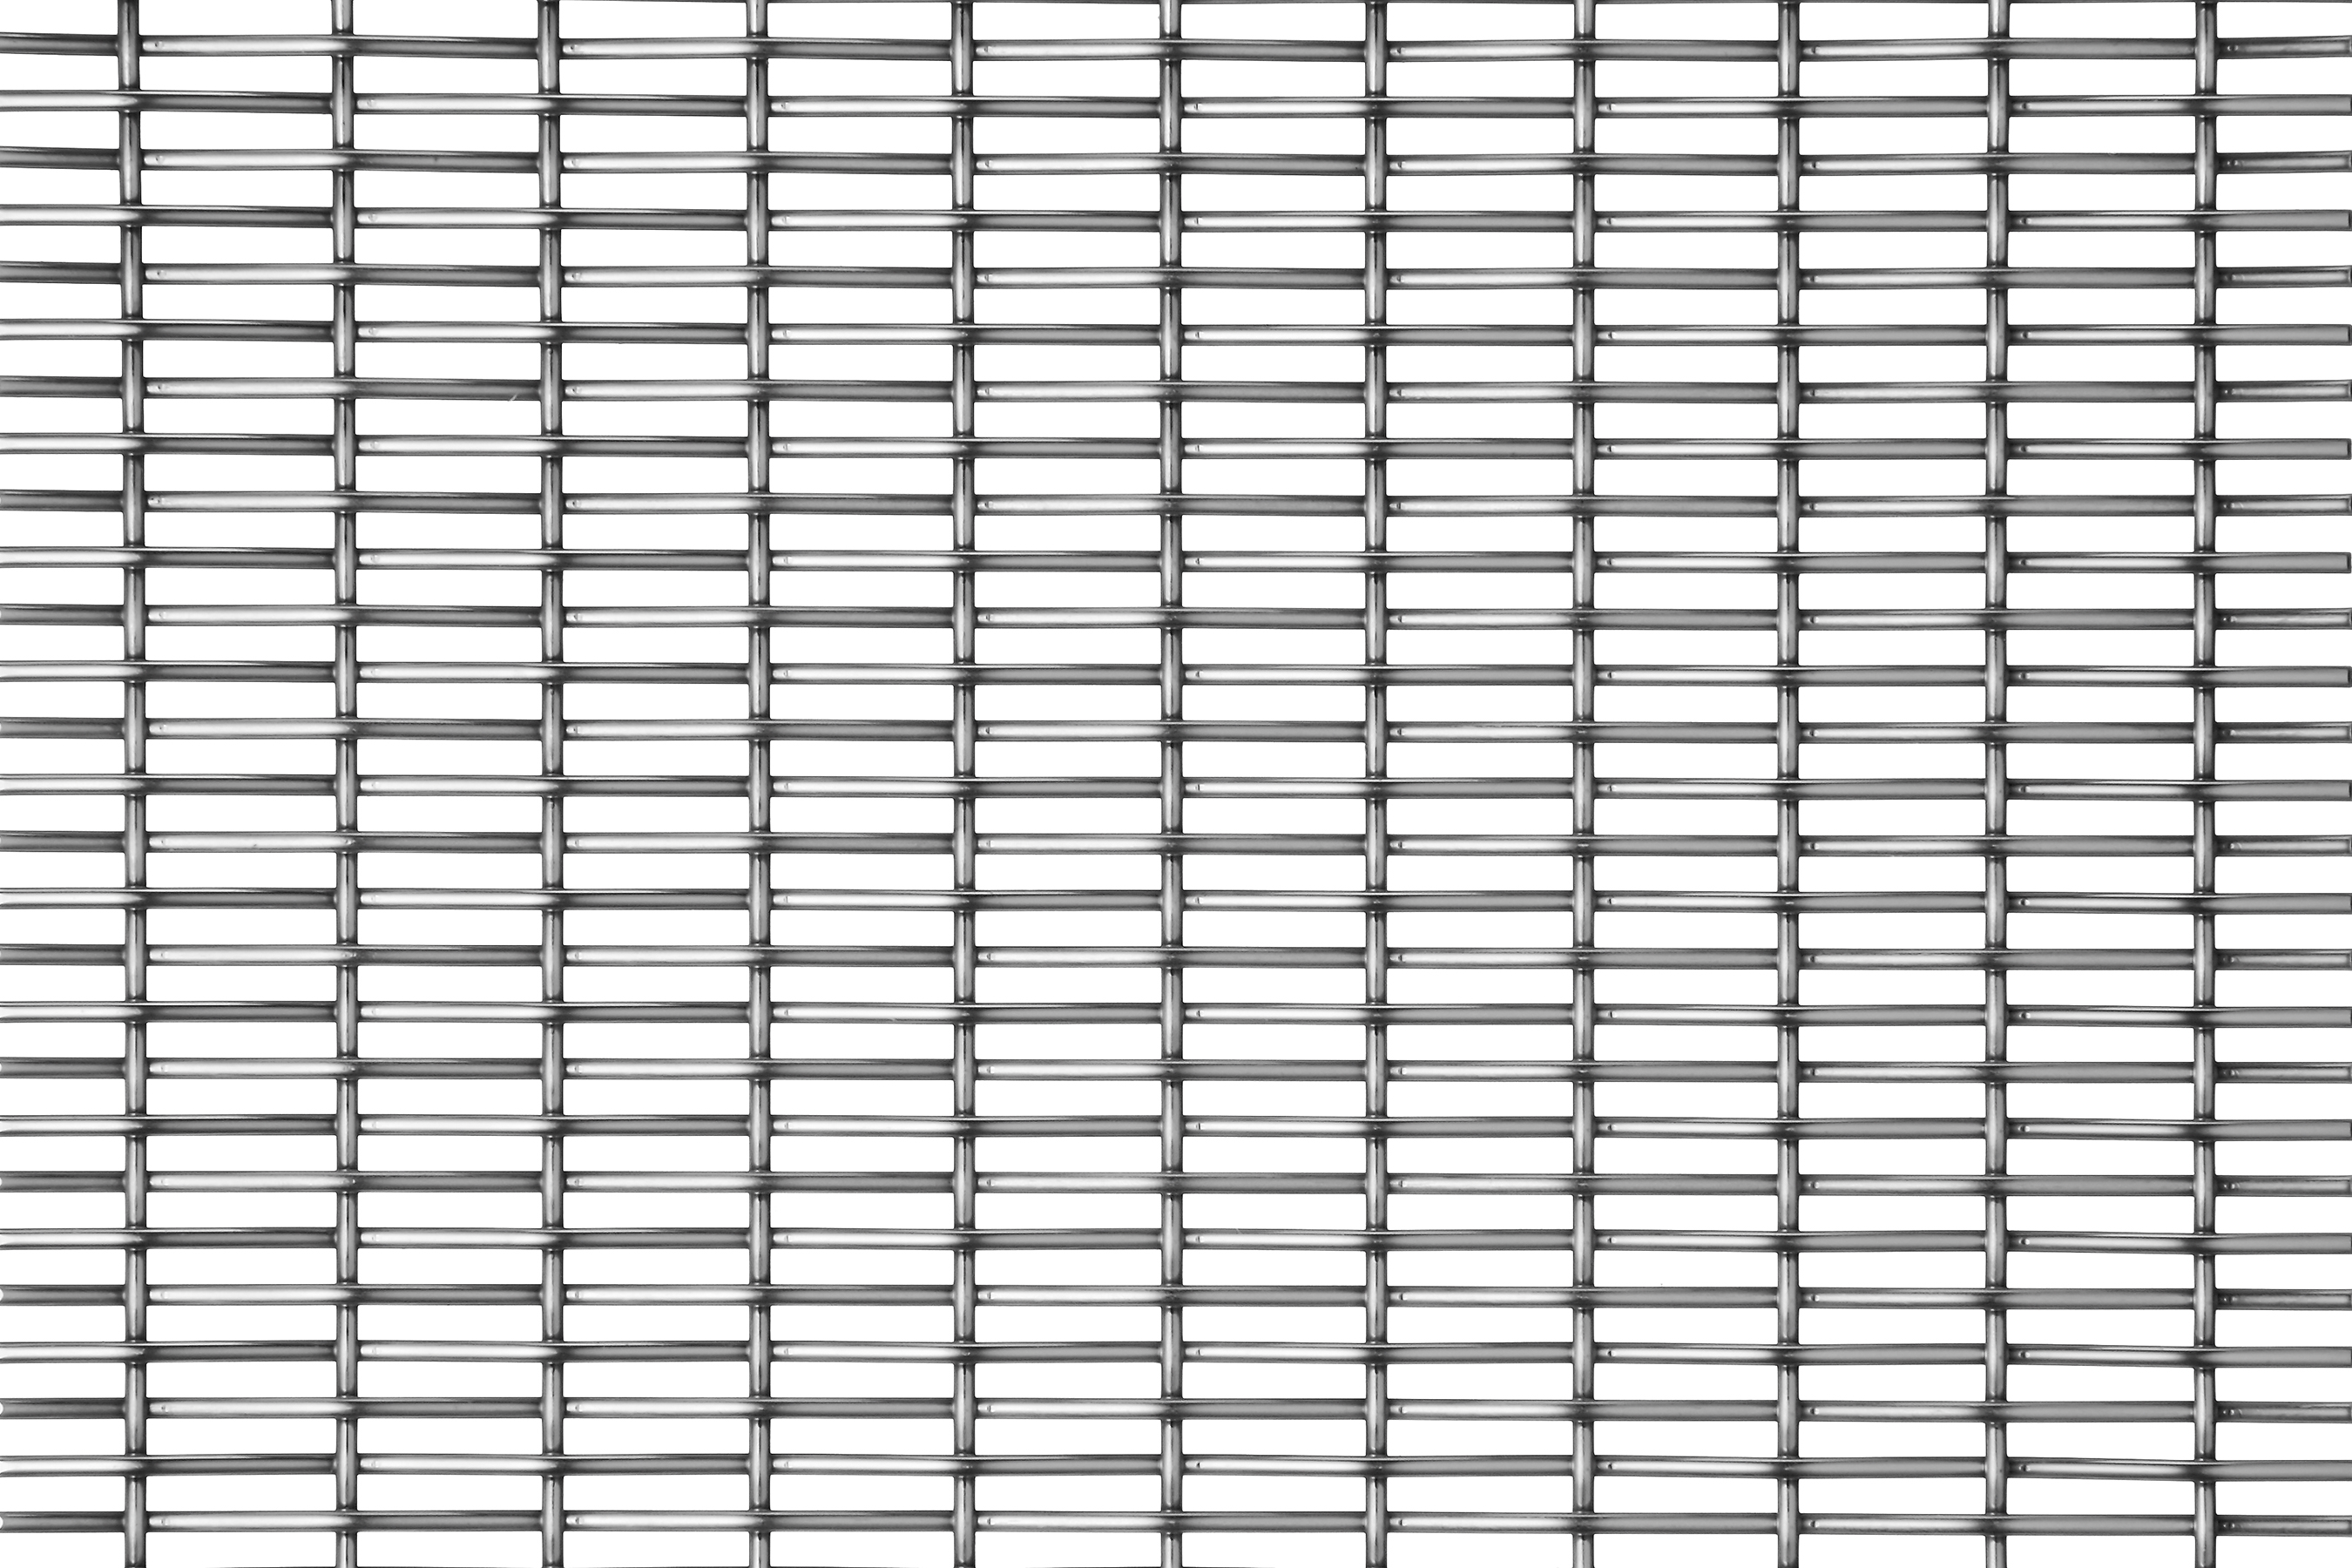 PZ-12 Stainless steel wire mesh